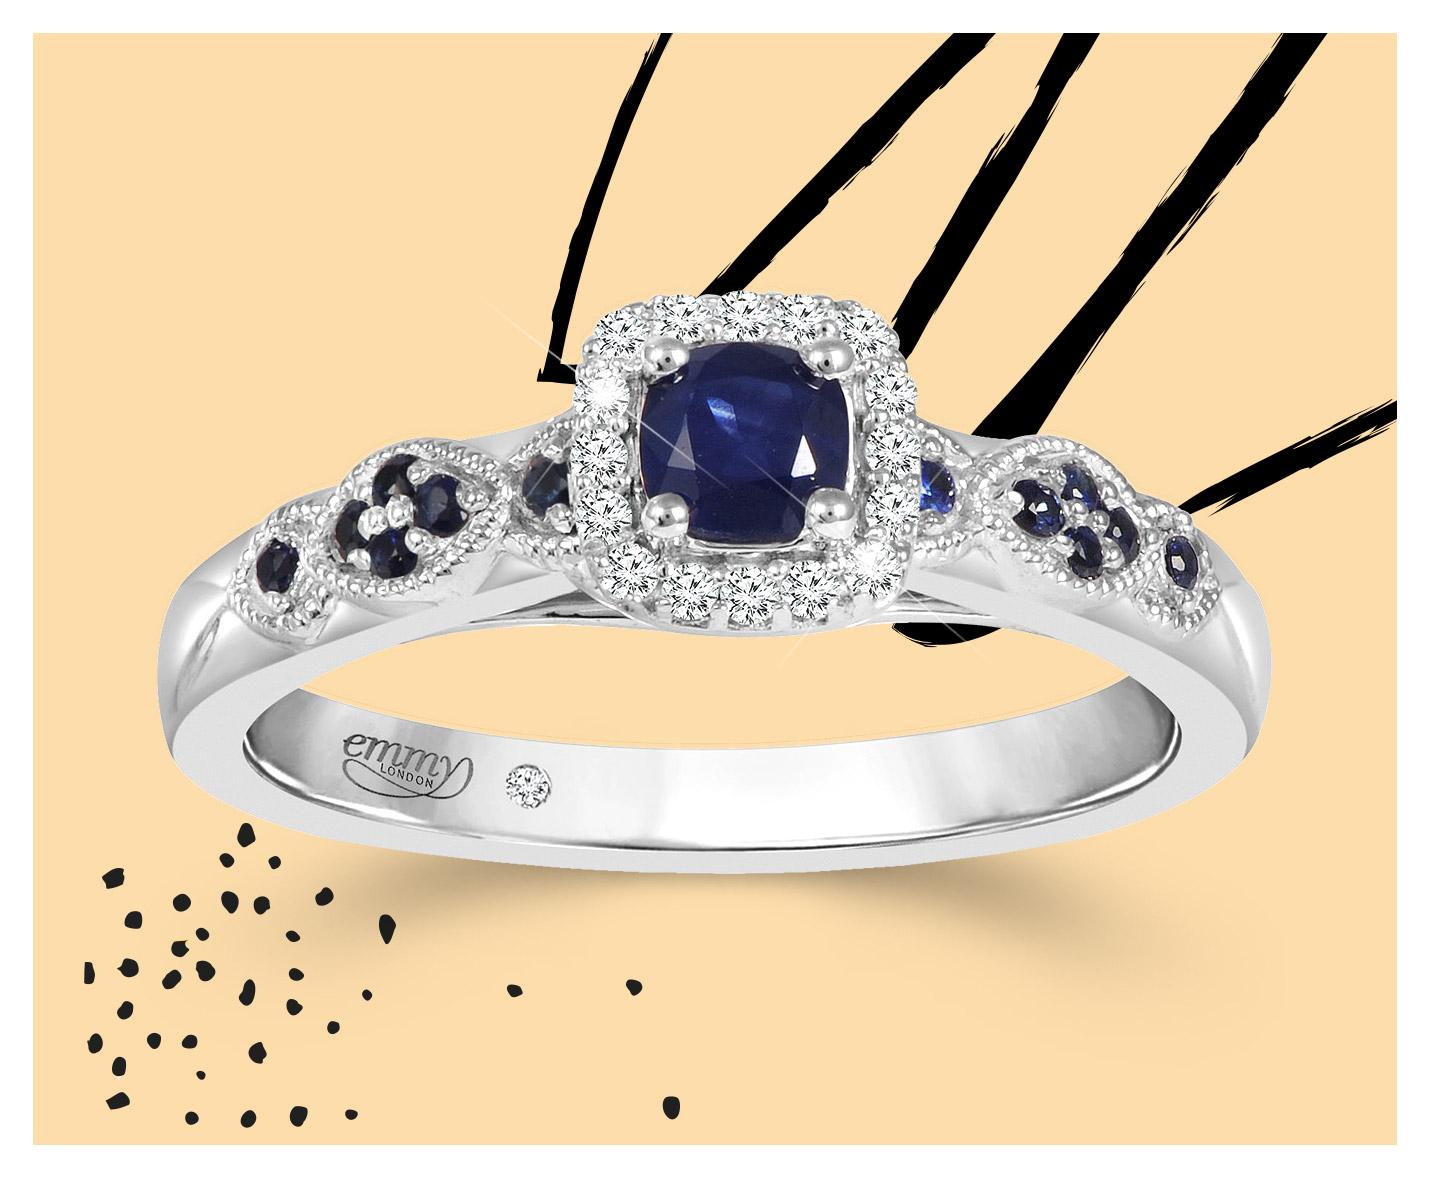 Emmy London 18ct White Gold Sapphire 0.05ct Diamond Ring